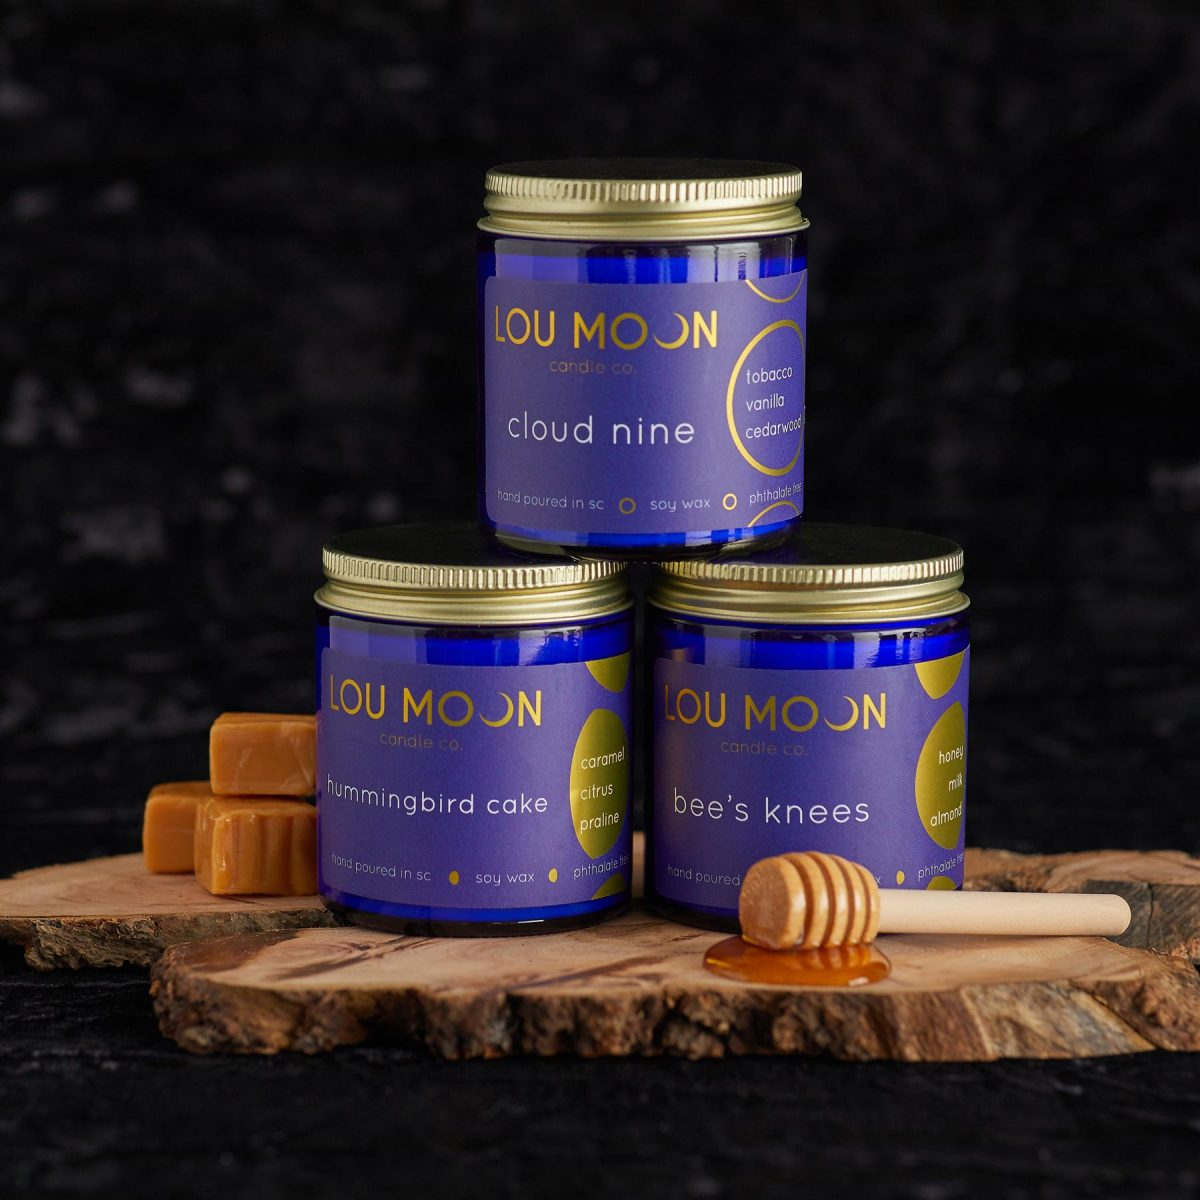 Product photography of Lou Moon candles